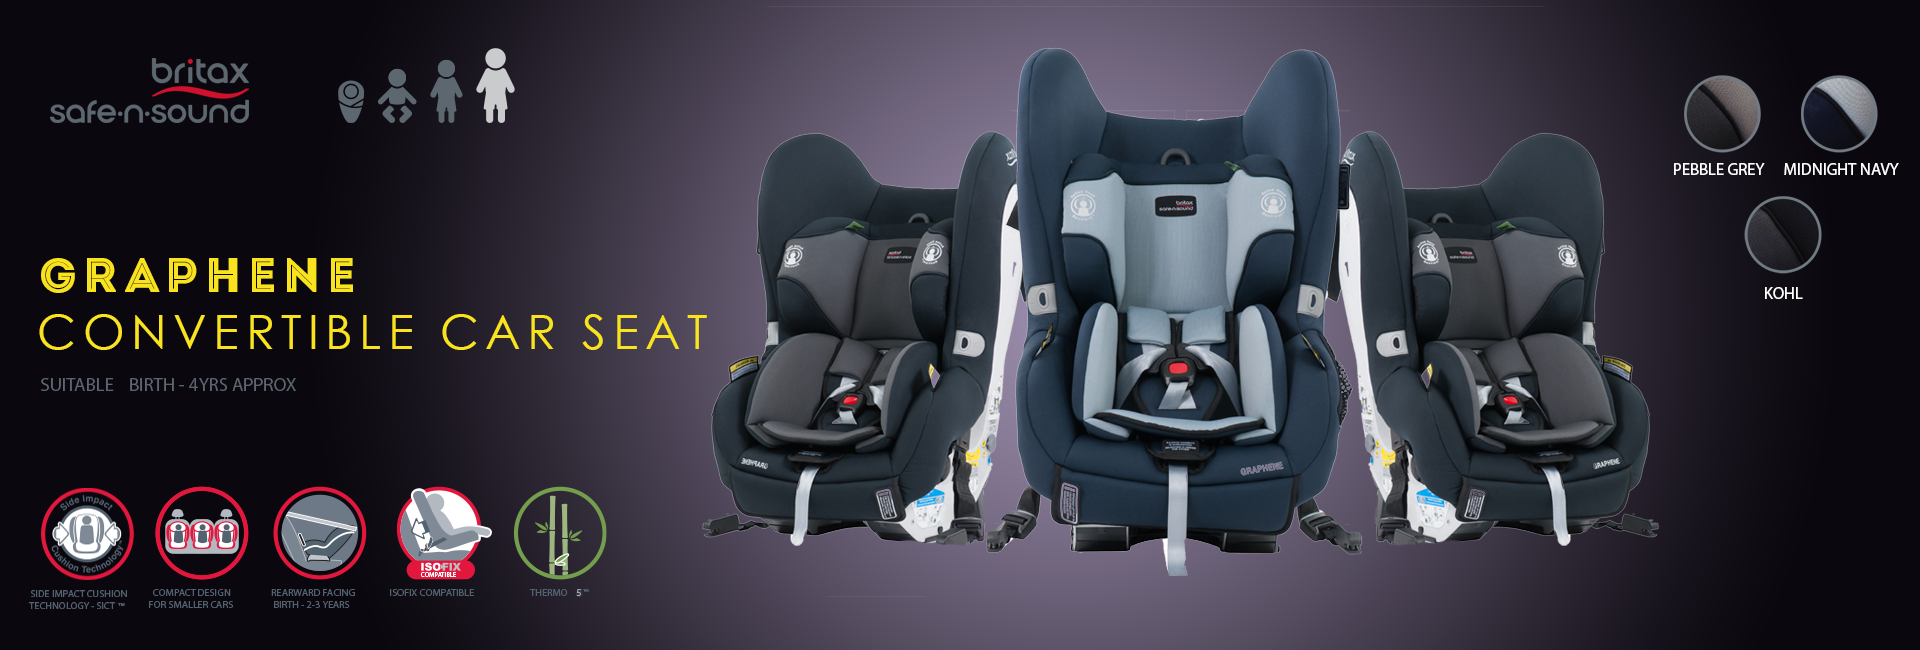 Britax Safe n sound Graphene Convertible Car Seat